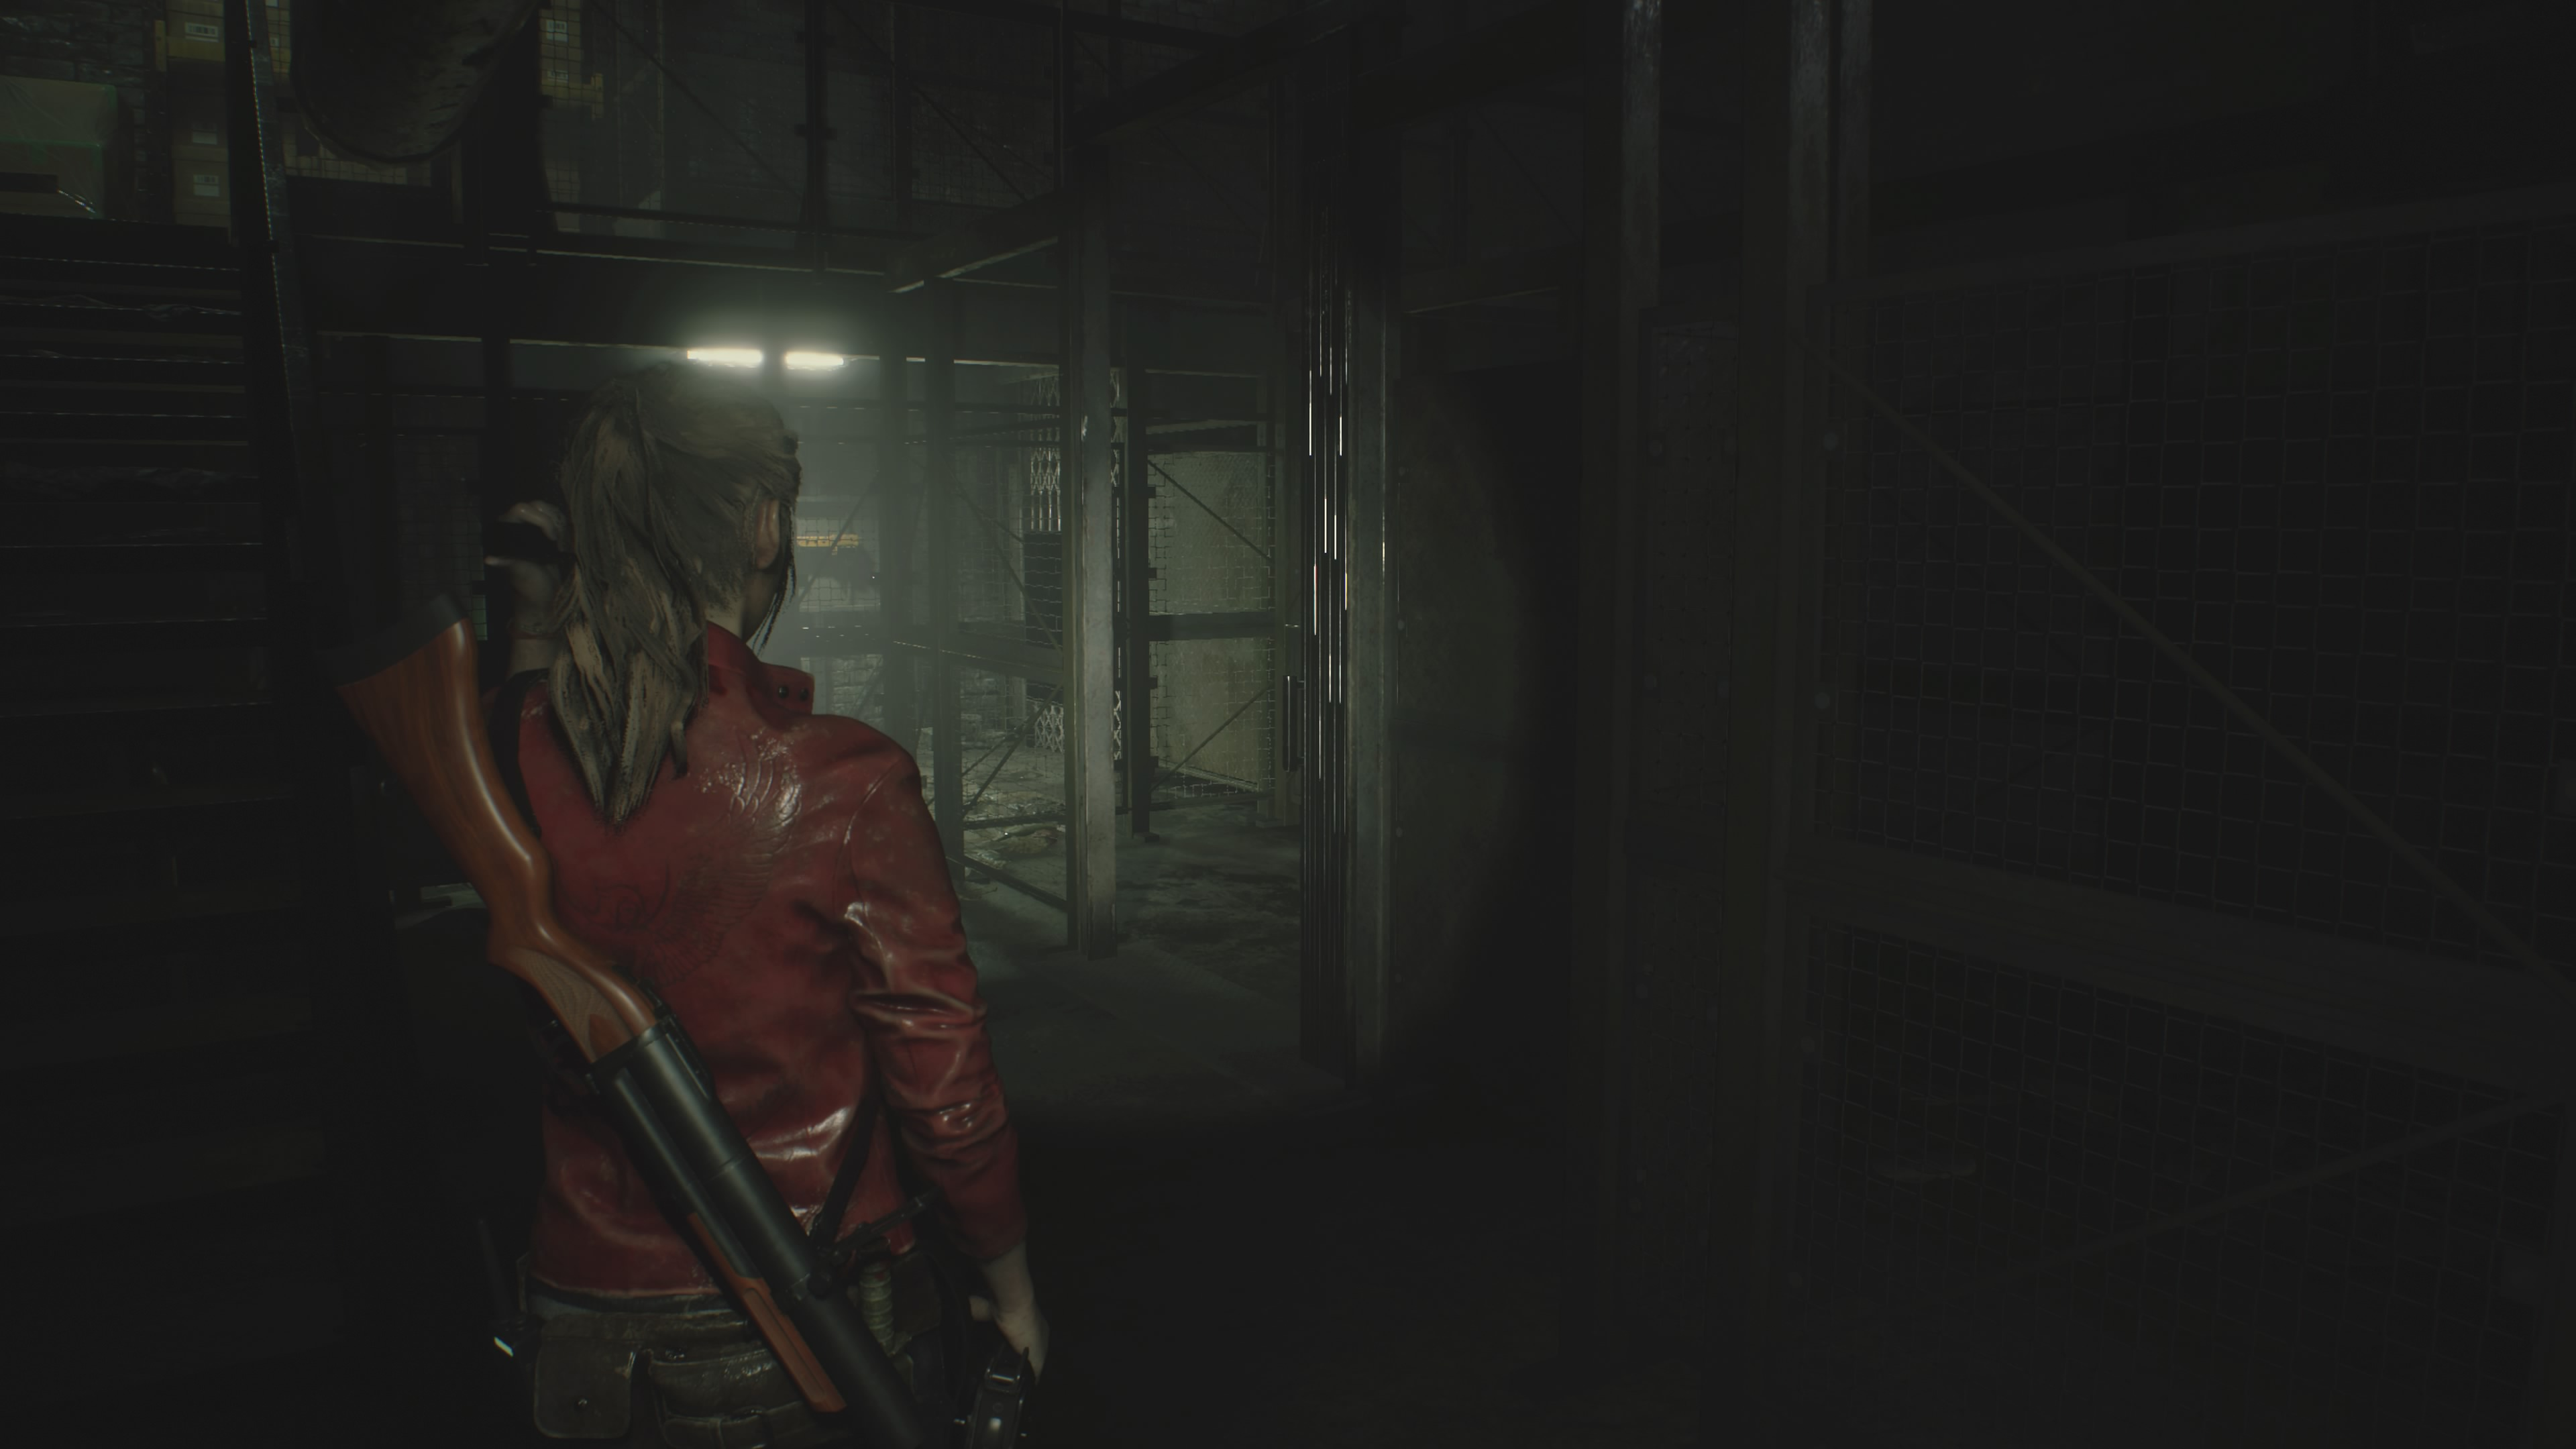 Resident Evil 2 Chess Puzzle Walkthrough - How to Find the Sewer